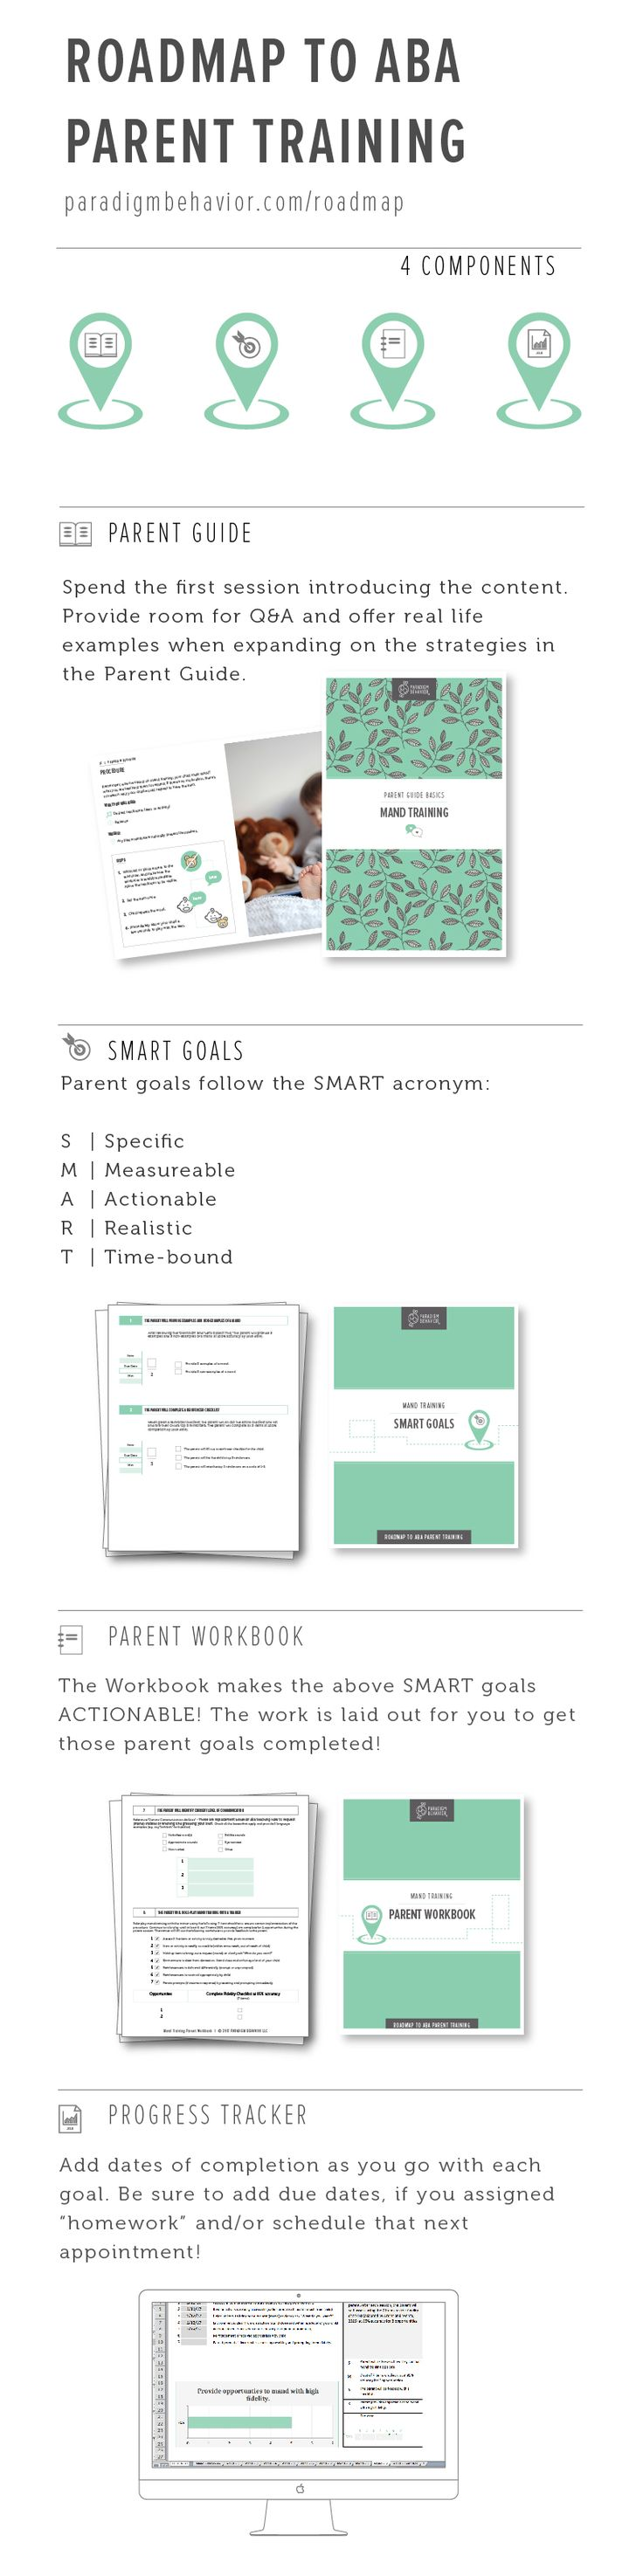 Best 25 aba training ideas on pinterest counselling training roadmap to aba parent is based on using smart goals to teach parents aba strategies like the abcs of behavior mand training and prompts xflitez Images